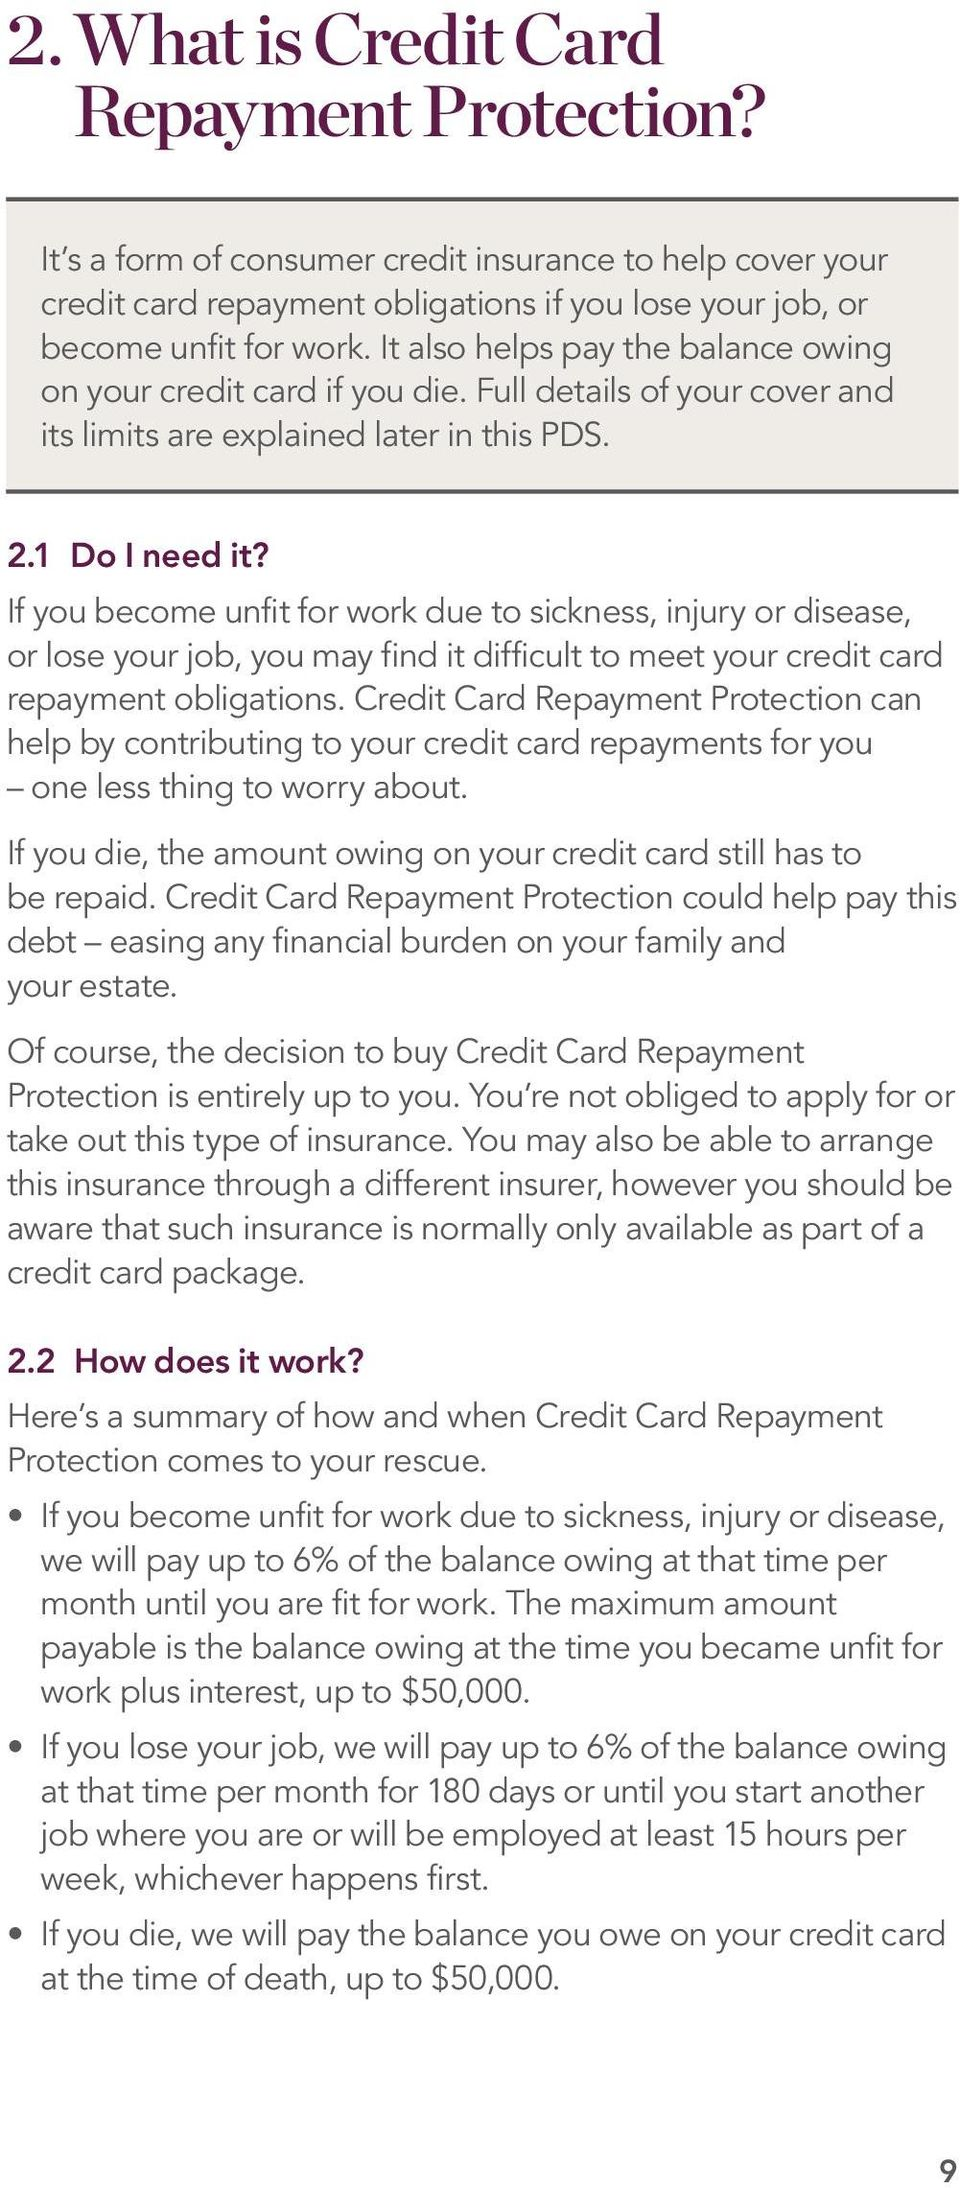 If you become unfit for work due to sickness, injury or disease, or lose your job, you may find it difficult to meet your credit card repayment obligations.